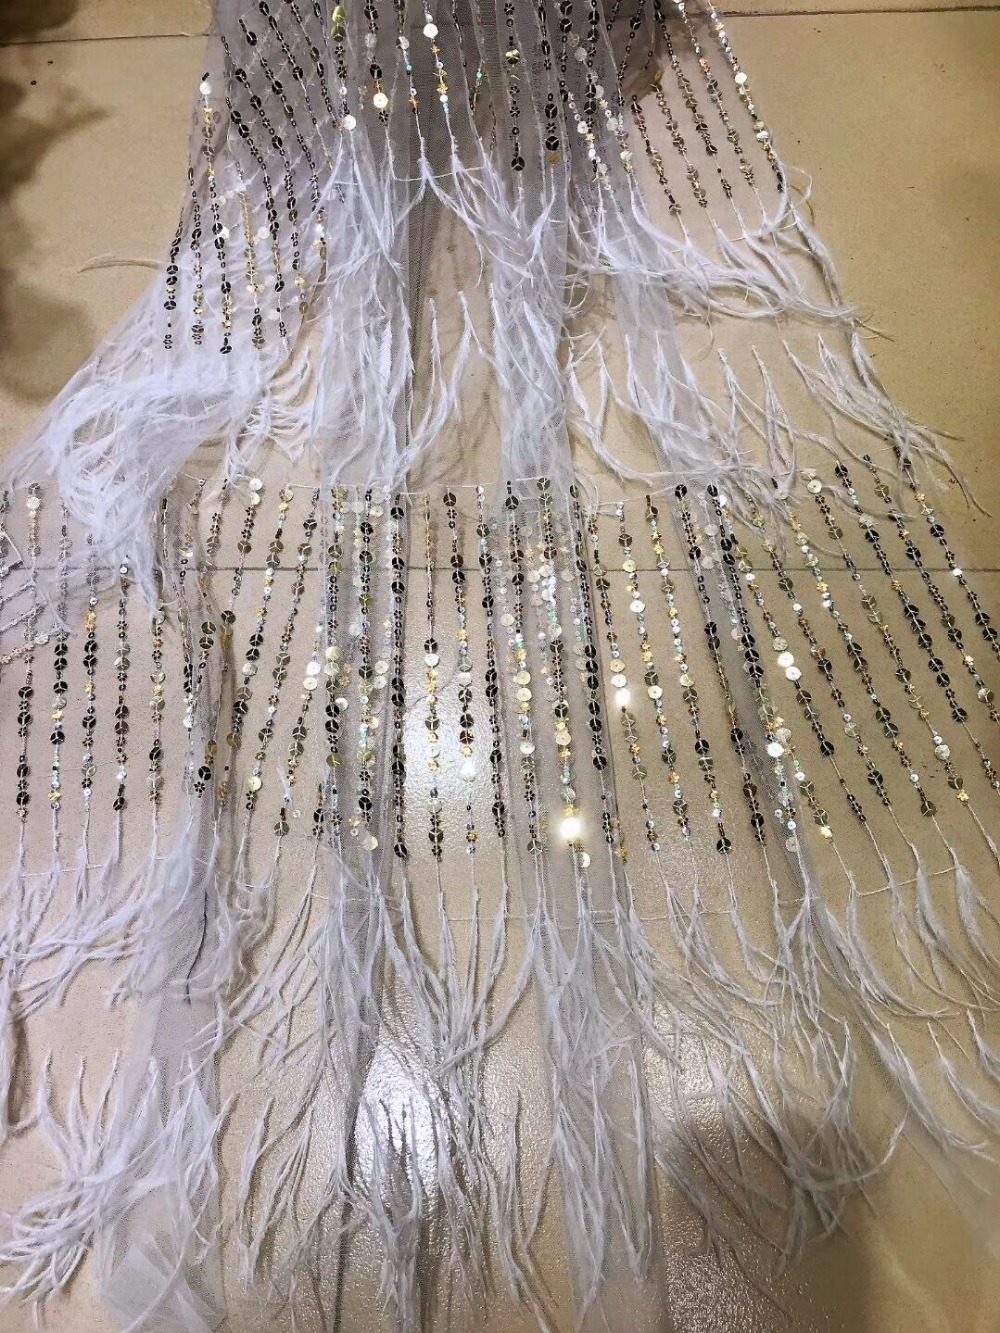 French 3d feather lace fabric handmade lace Sequins African tulle mesh lace fabric wedding dress lace 5yard